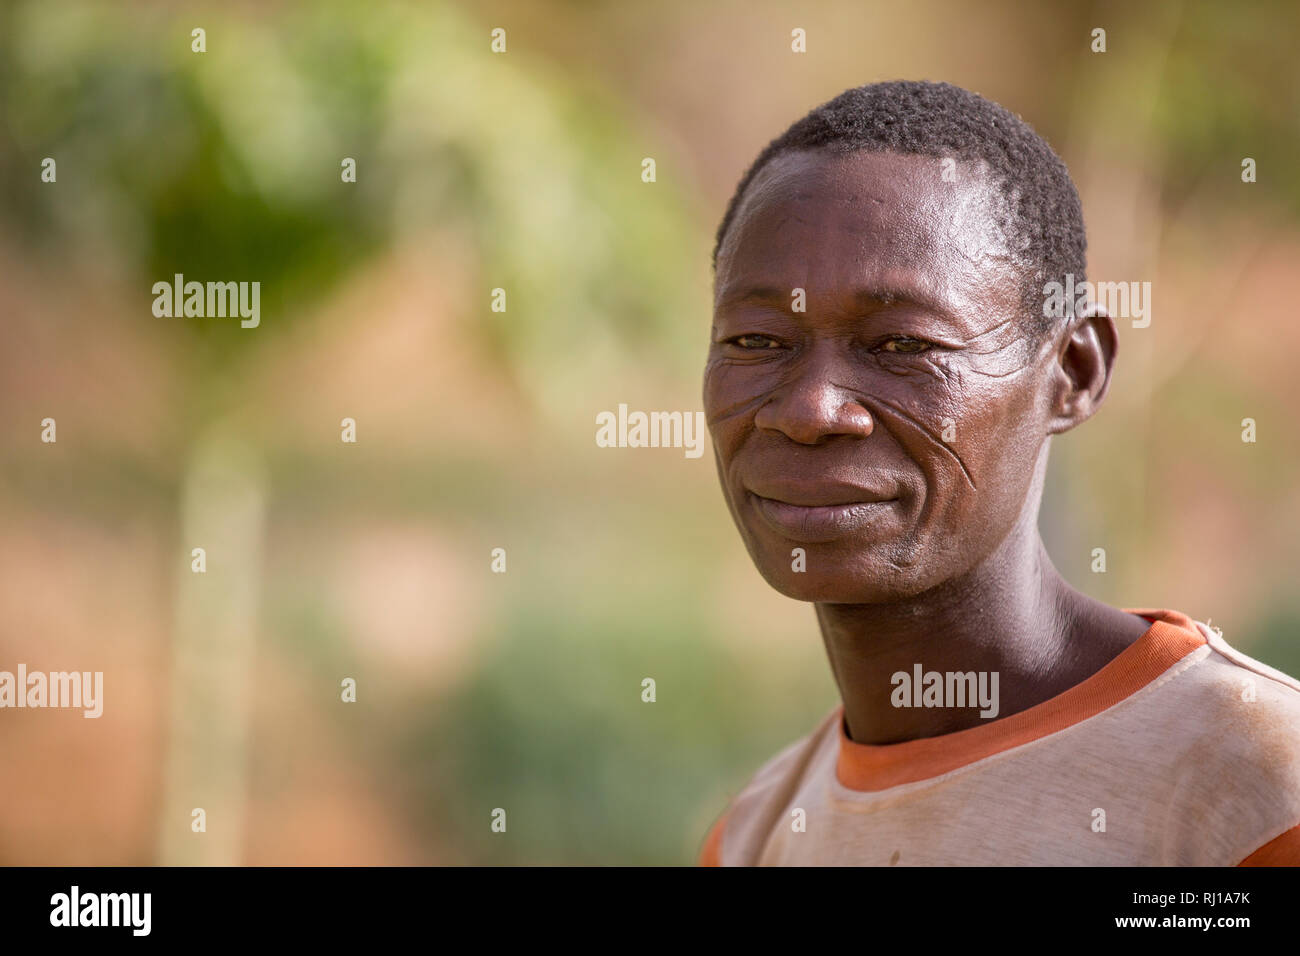 Samba village, Yako Province, Burkina Faso: Portait of Denis Zoundi, 45,with tribal scars, while watering crops on his market garden. - Stock Image